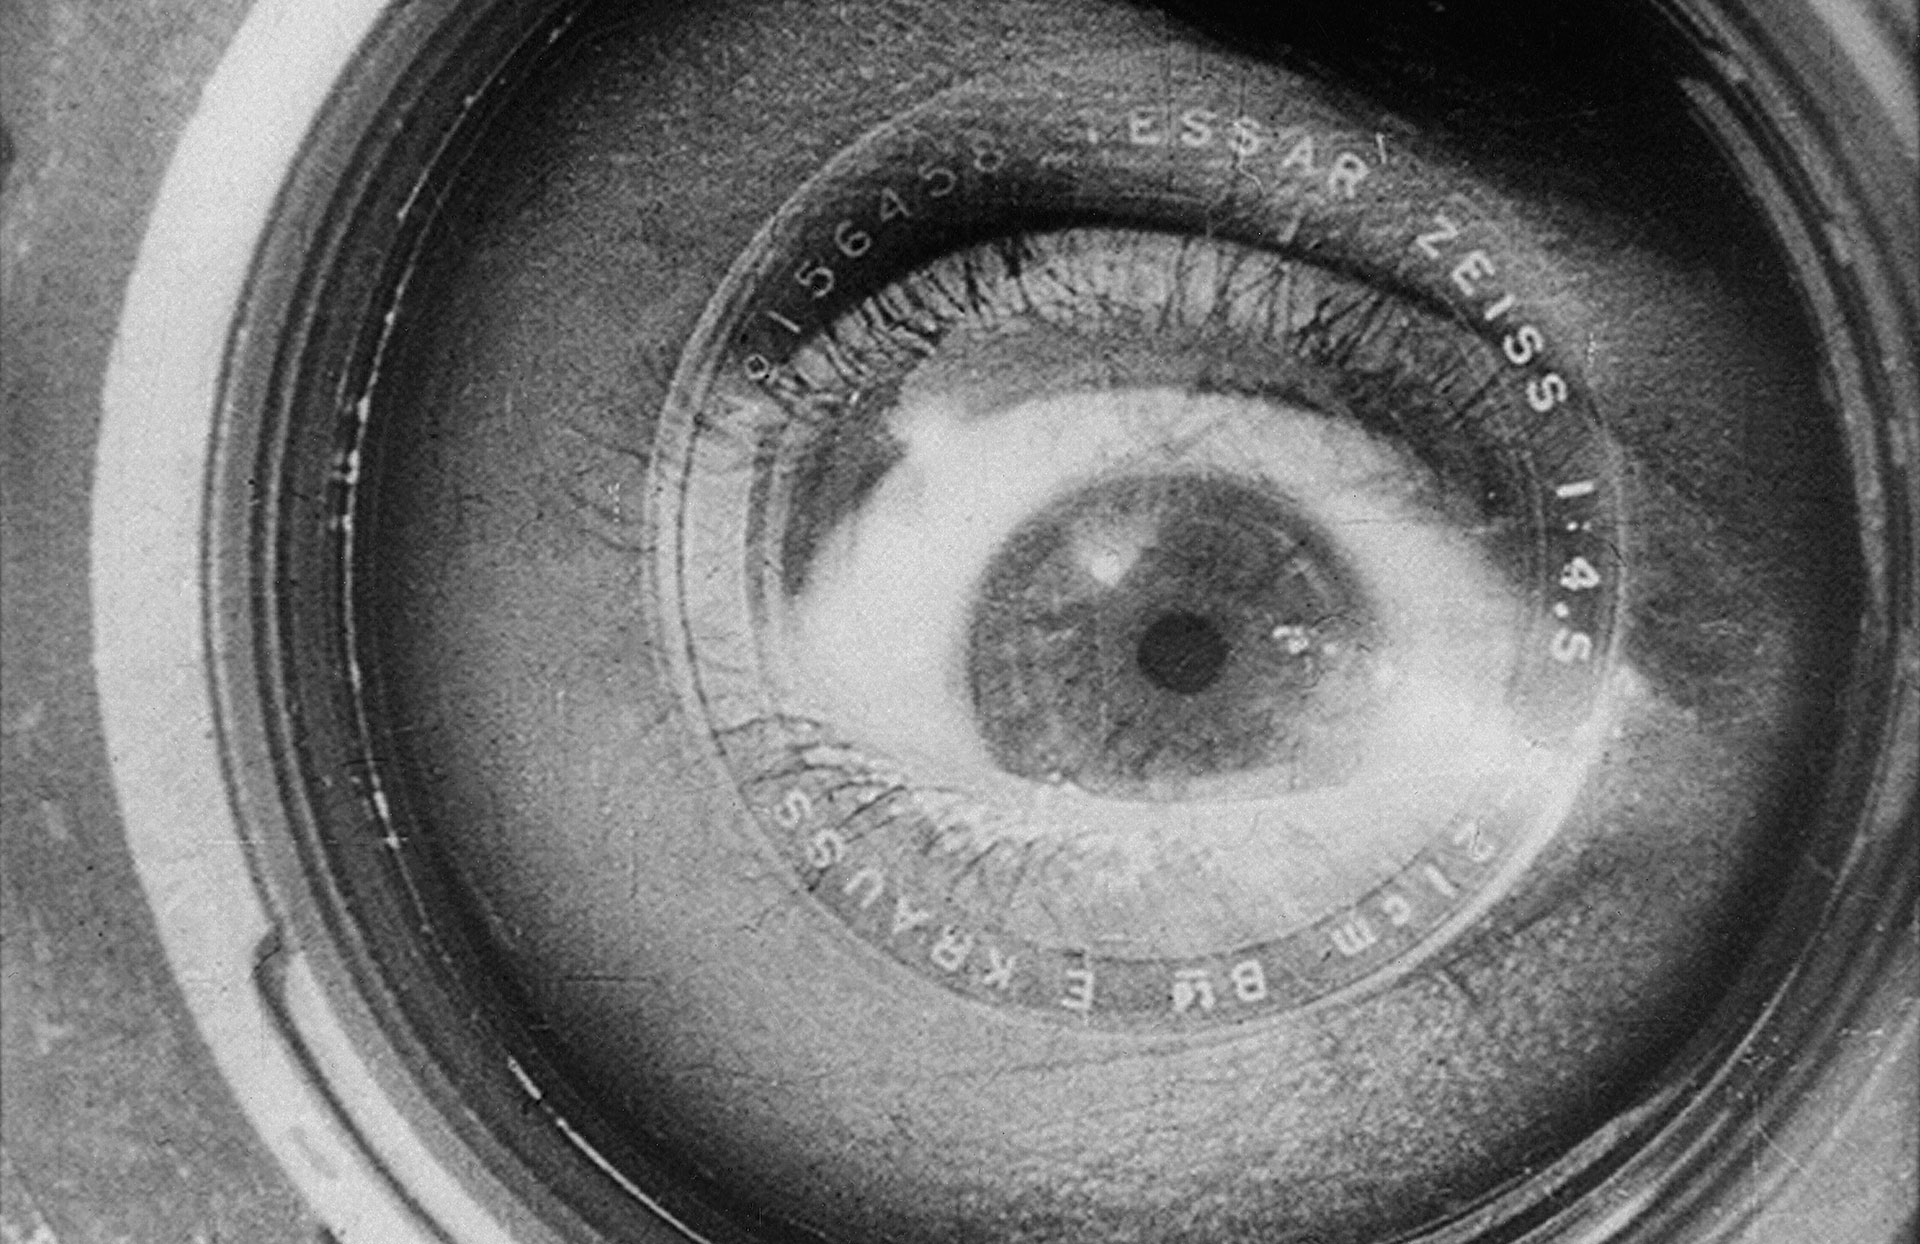 essay on the man with a movie camera Kieron corless explores the subversive, indeterminate nature of the essay film   tagged with: essay film, kireron corless, man with a movie camera,.